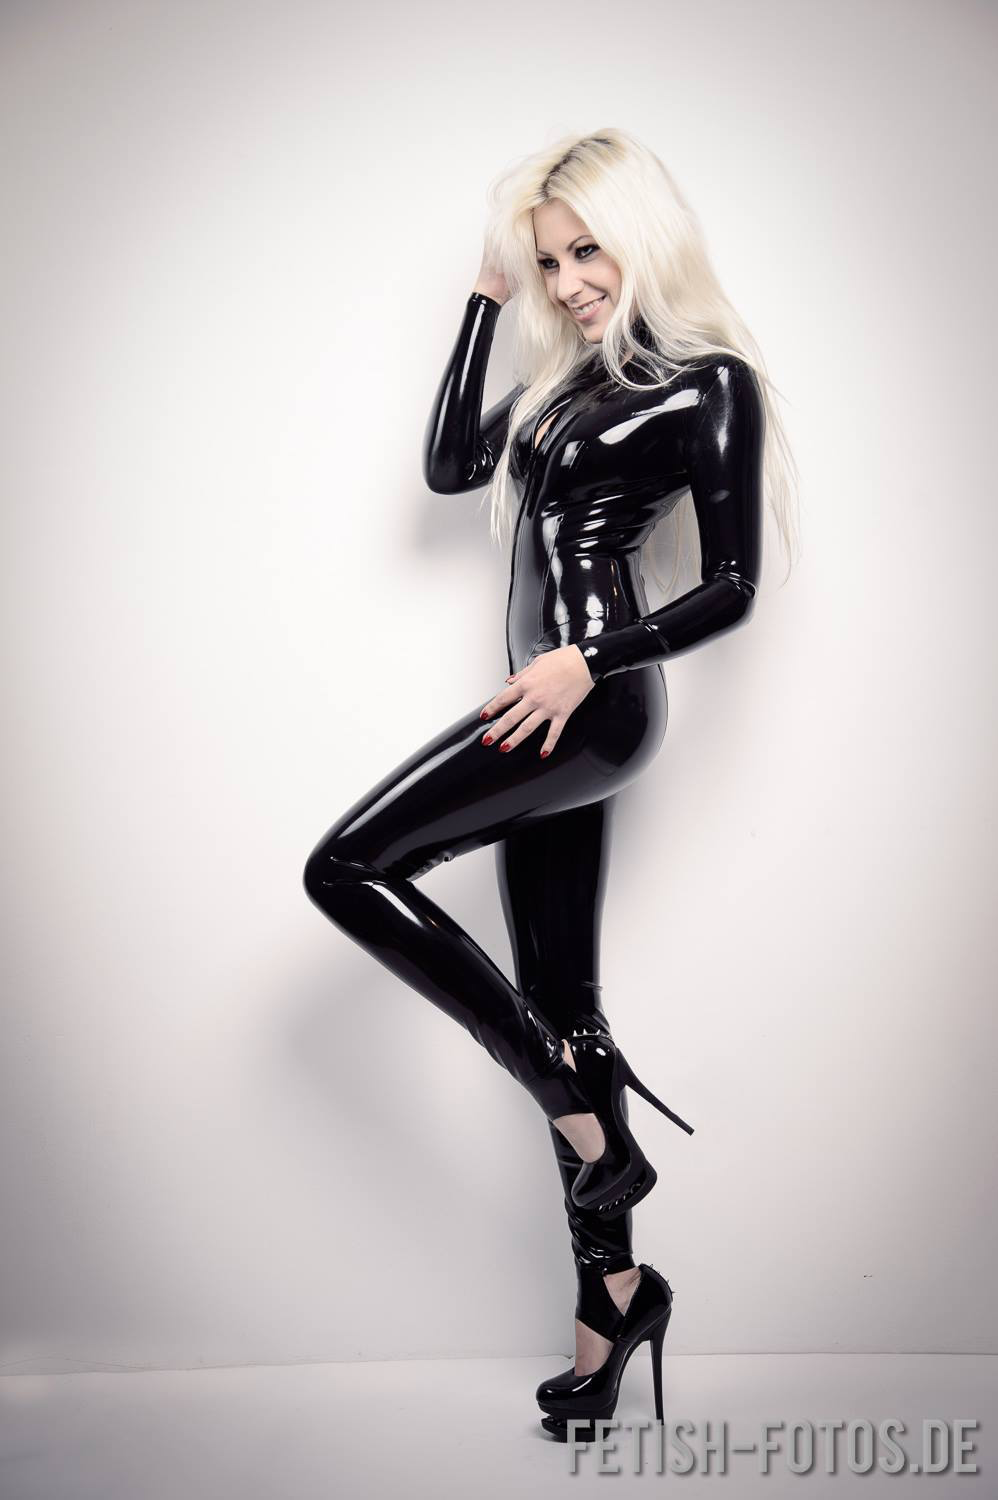 Latex fetish photos